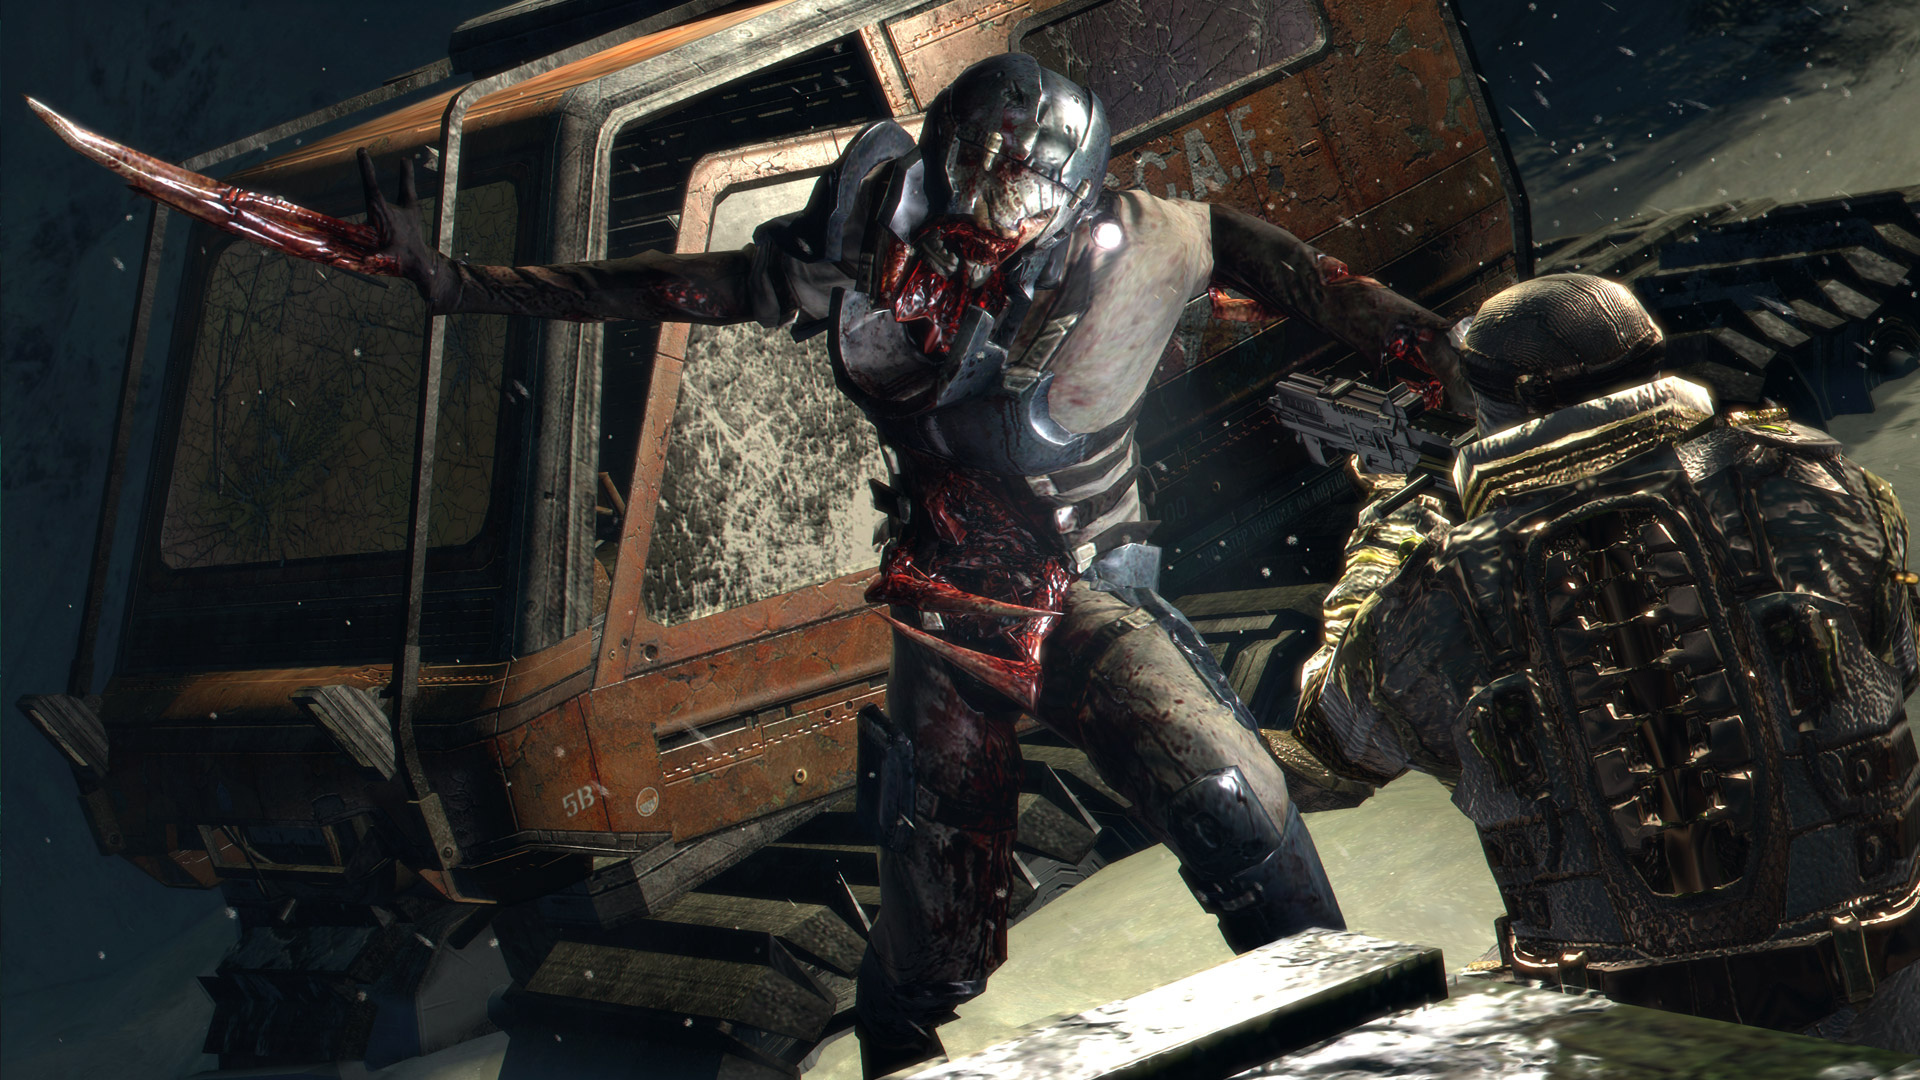 Dead Space 3 features